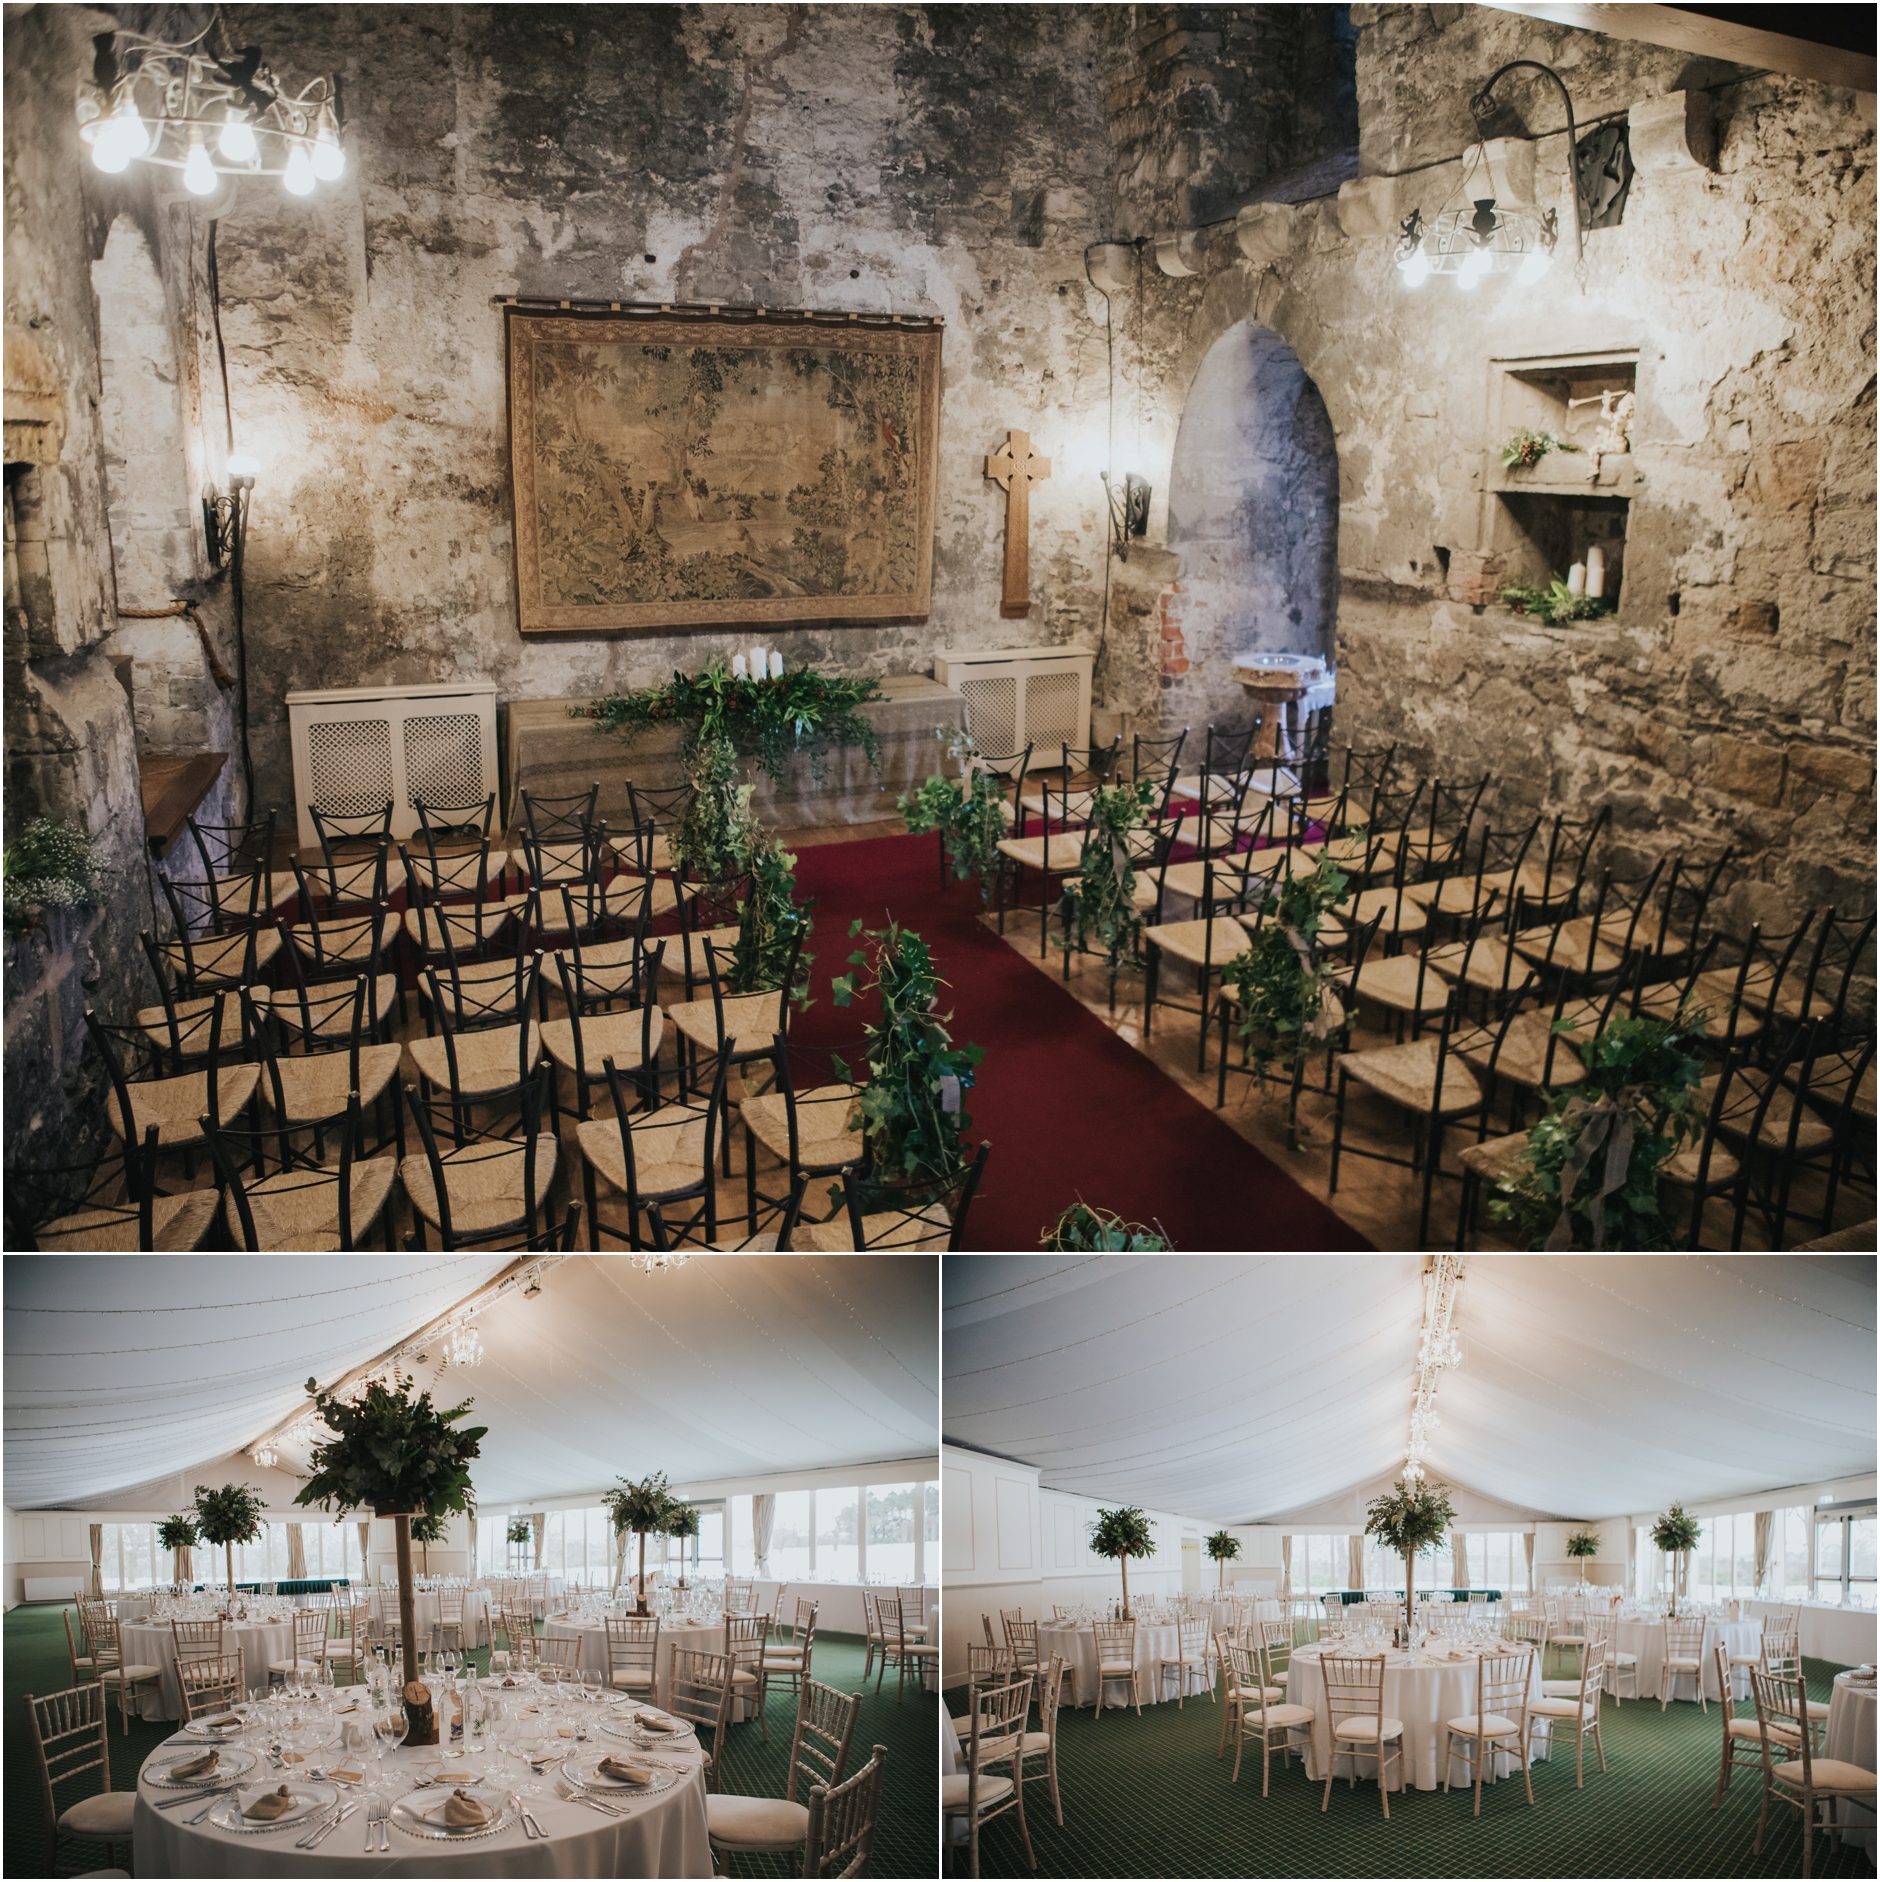 dundas castle wedding venue ceremony set up